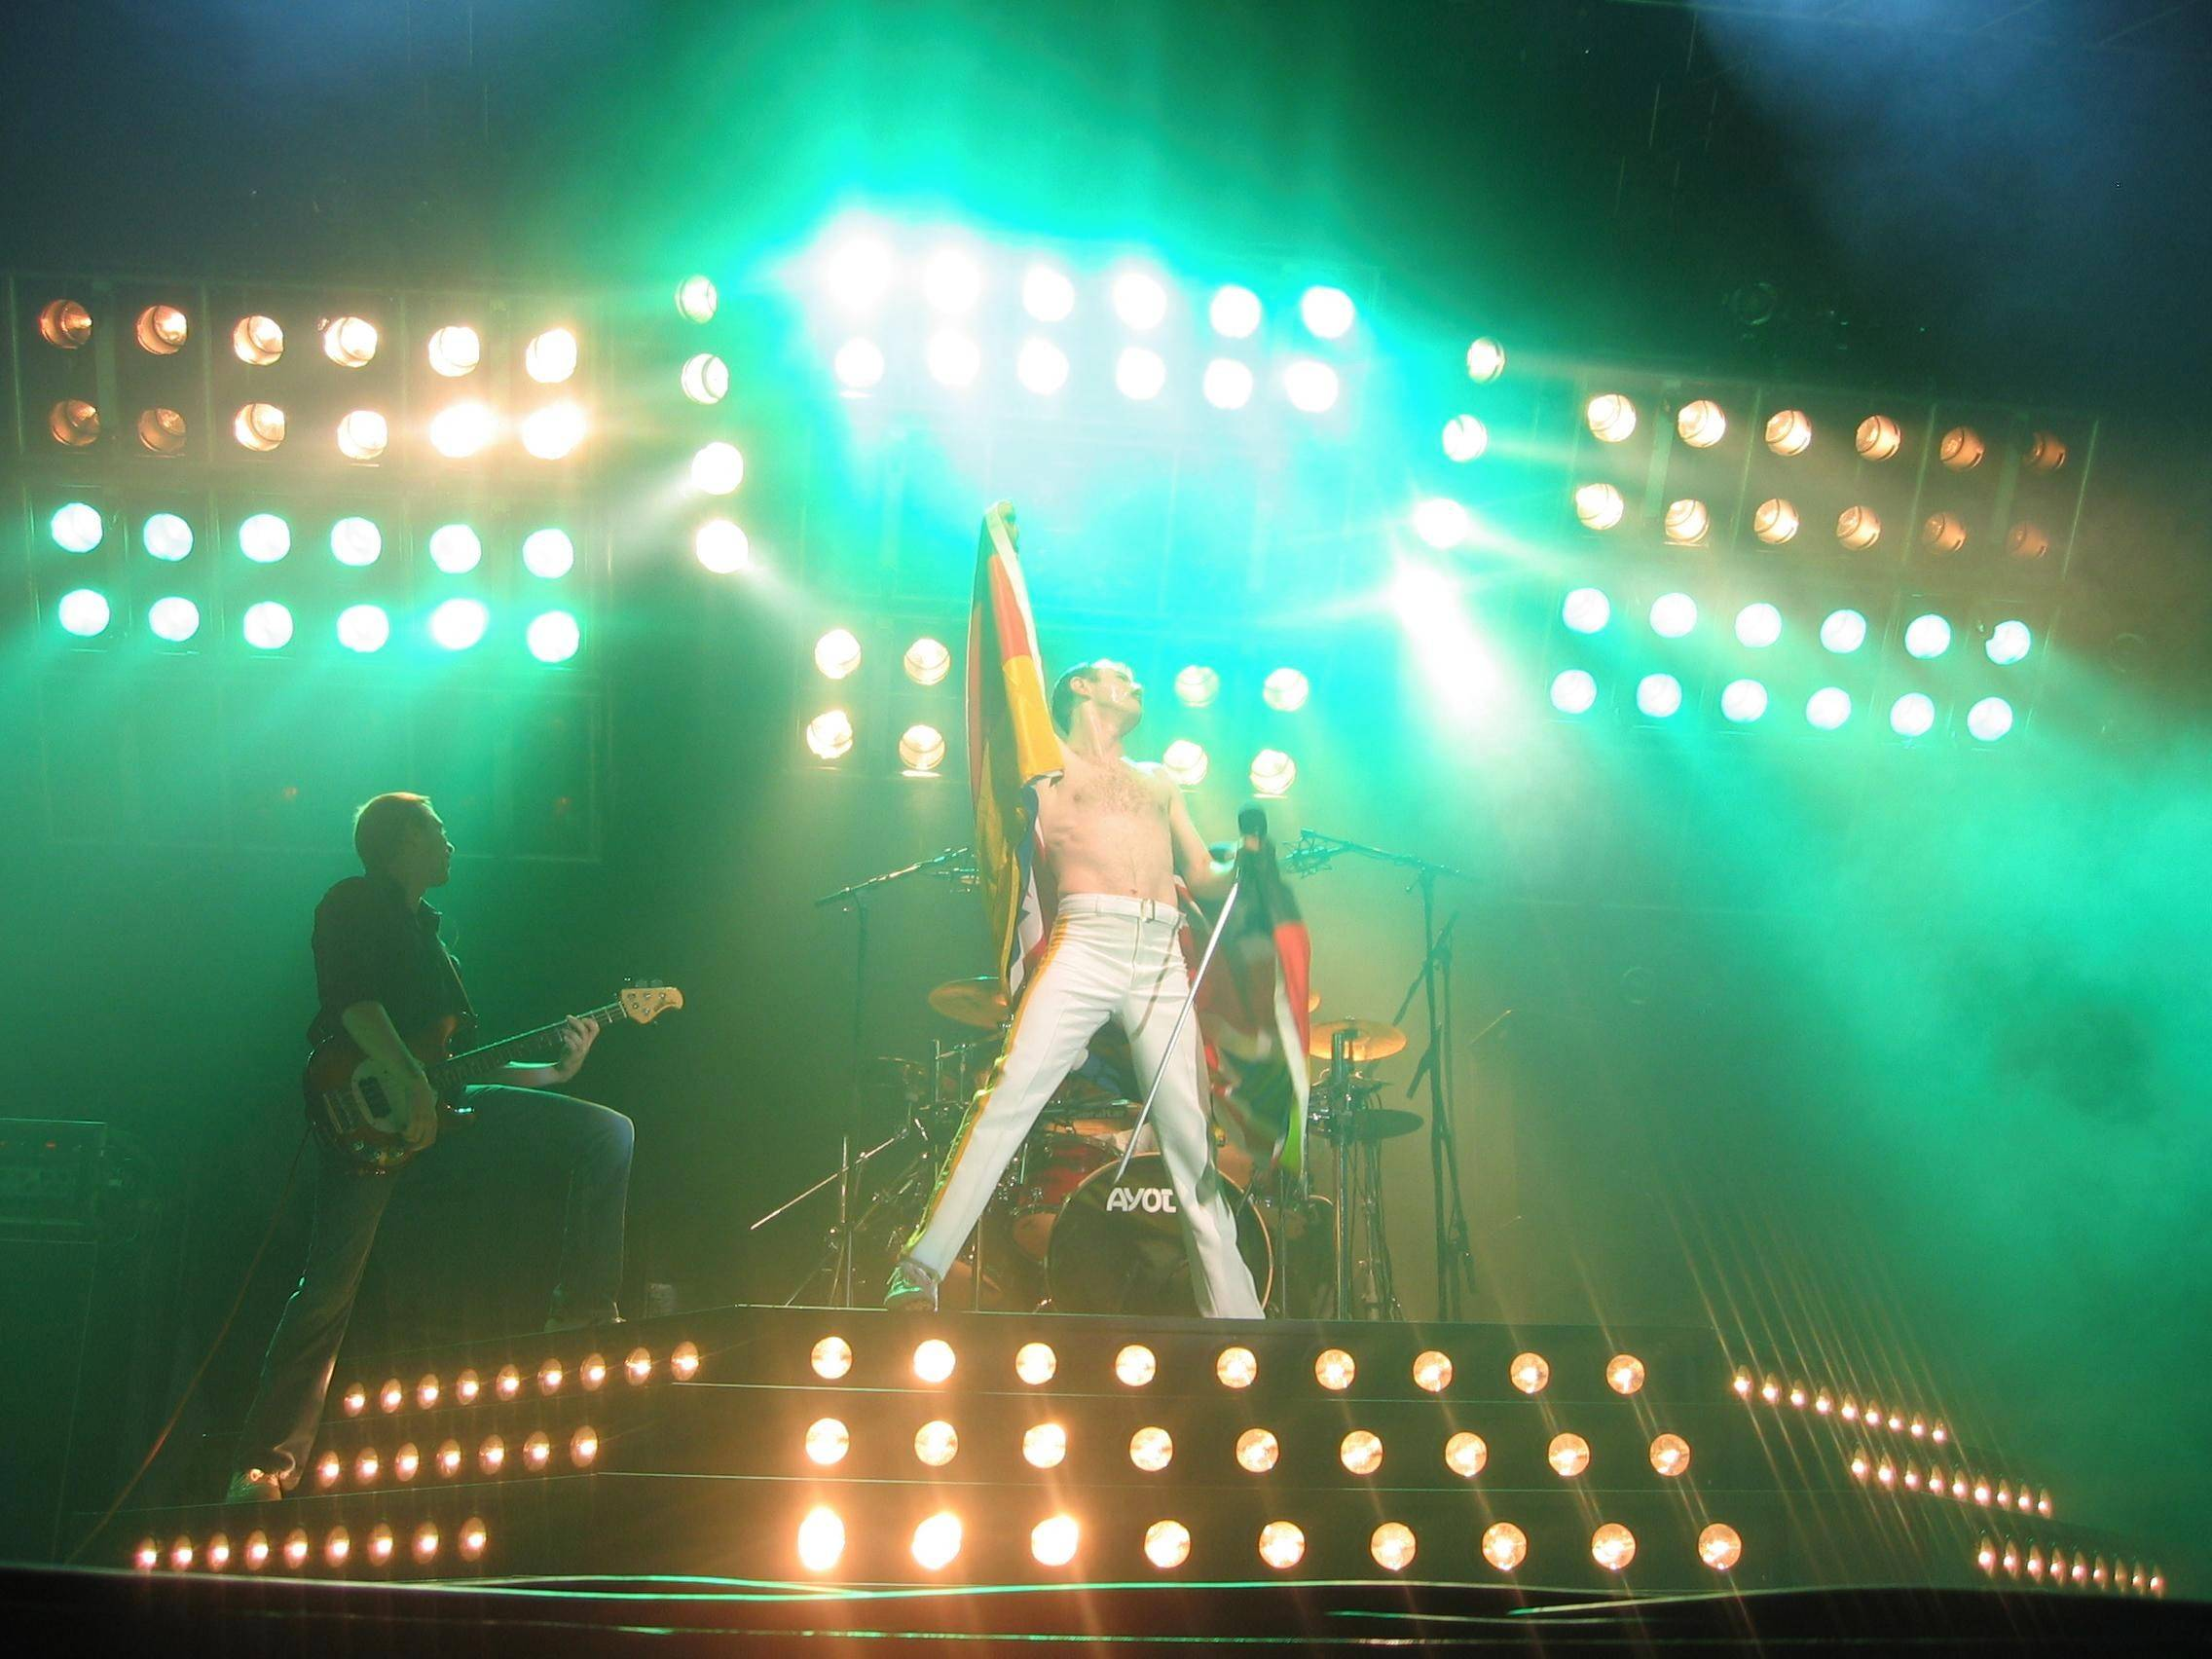 One Night of Queen play the Rosemont Theatre on Sunday, March 15.